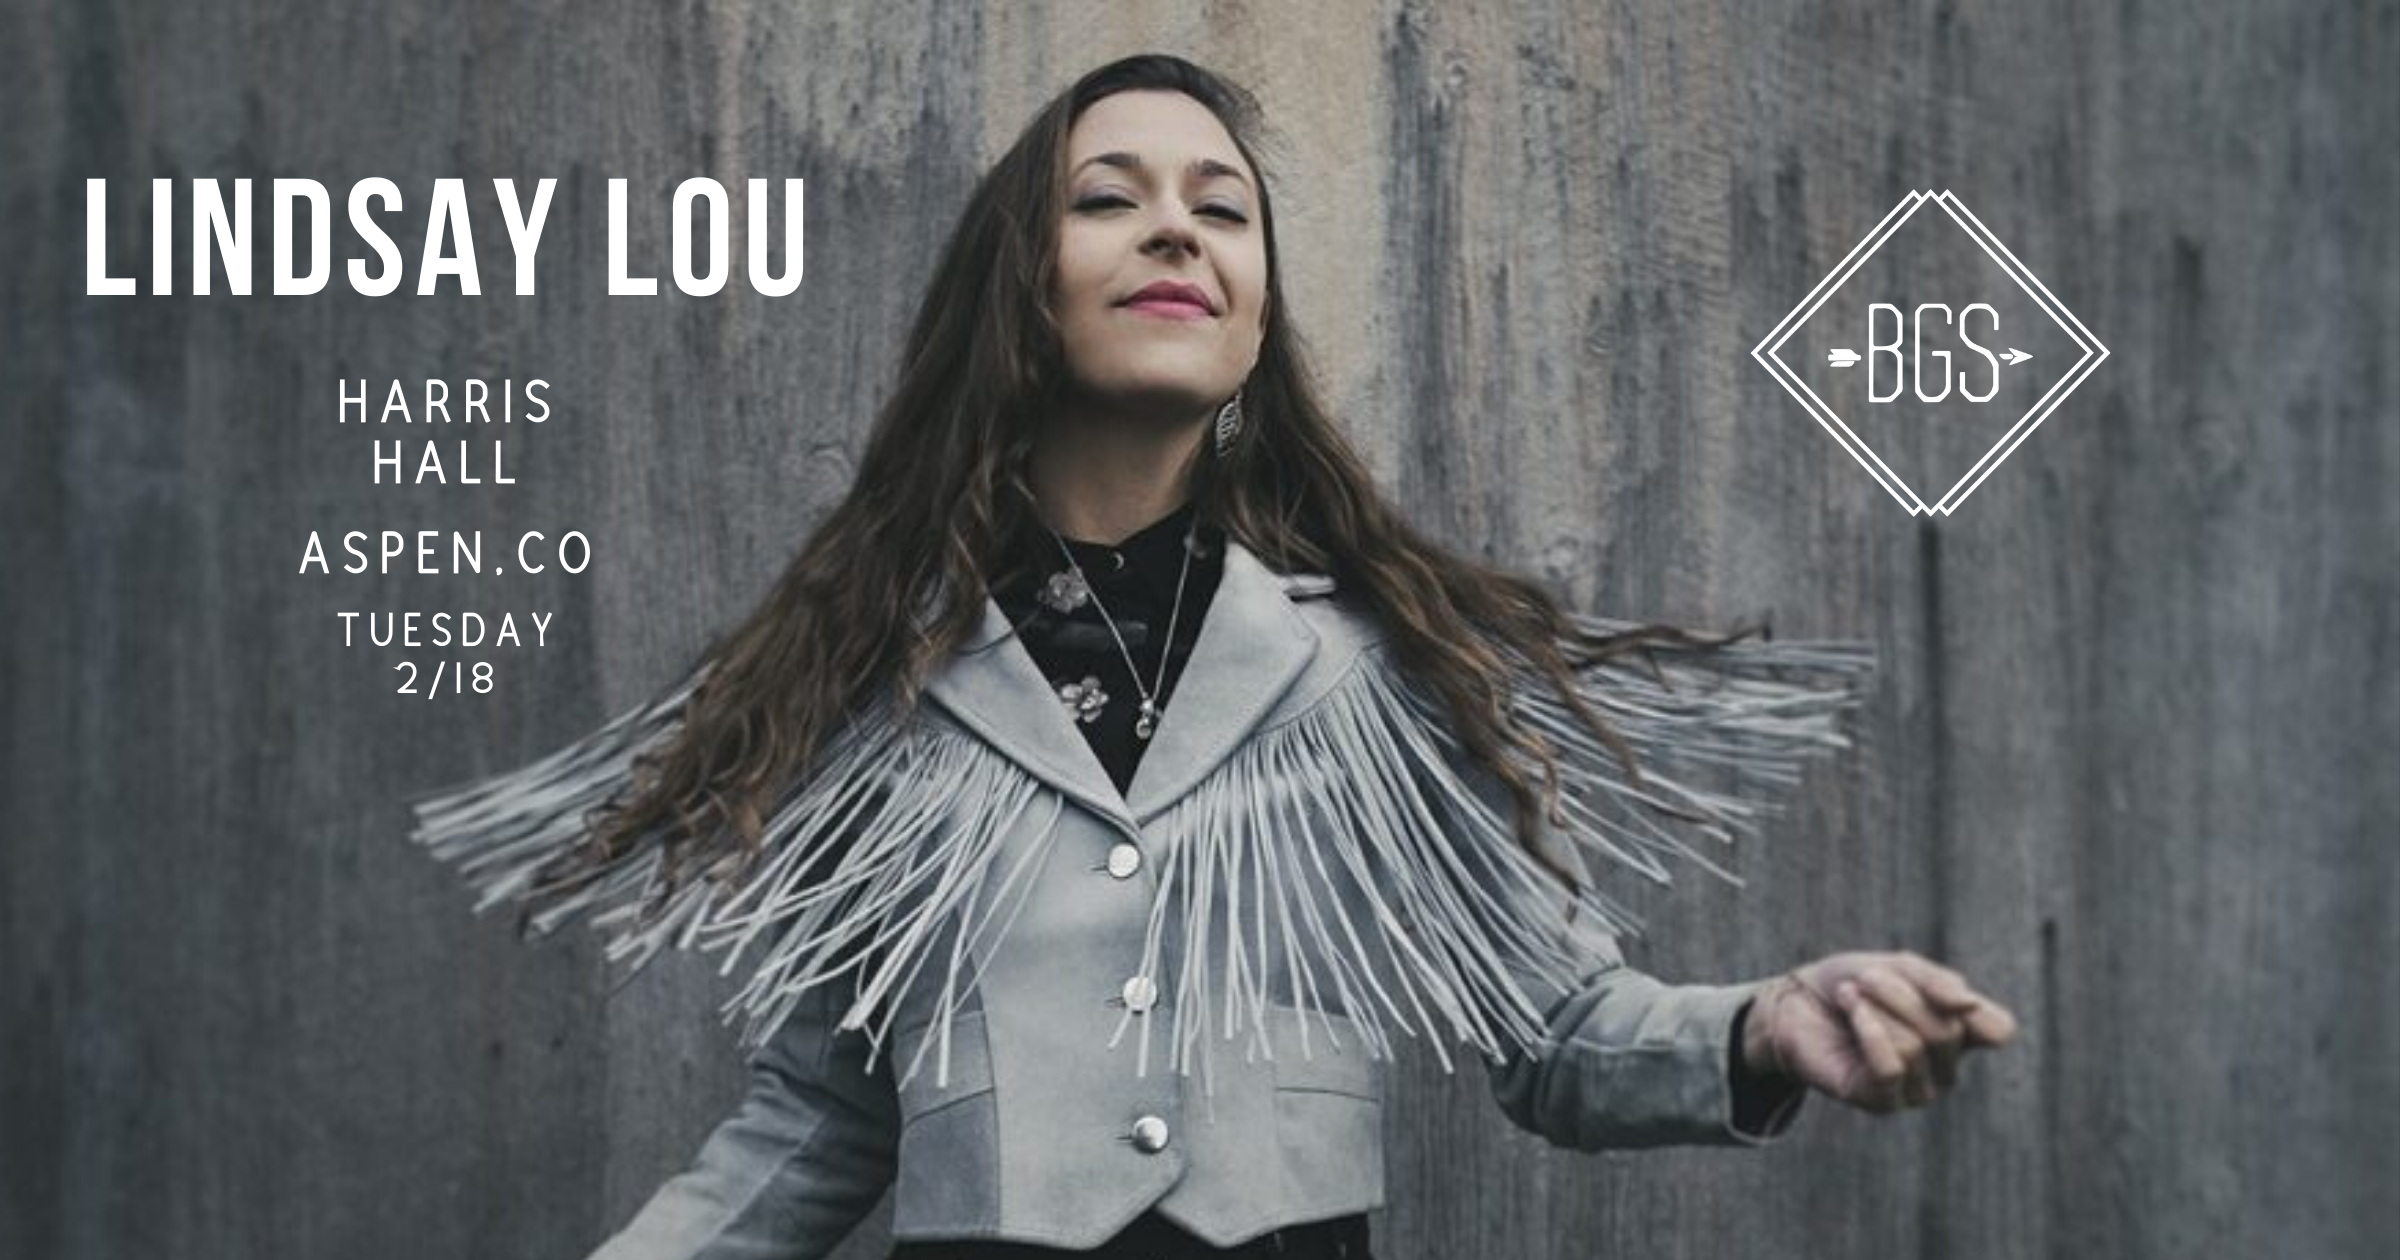 GIVEAWAY: Win tickets to Lindsay Lou @ Harris Hall (Aspen, CO) 2/18